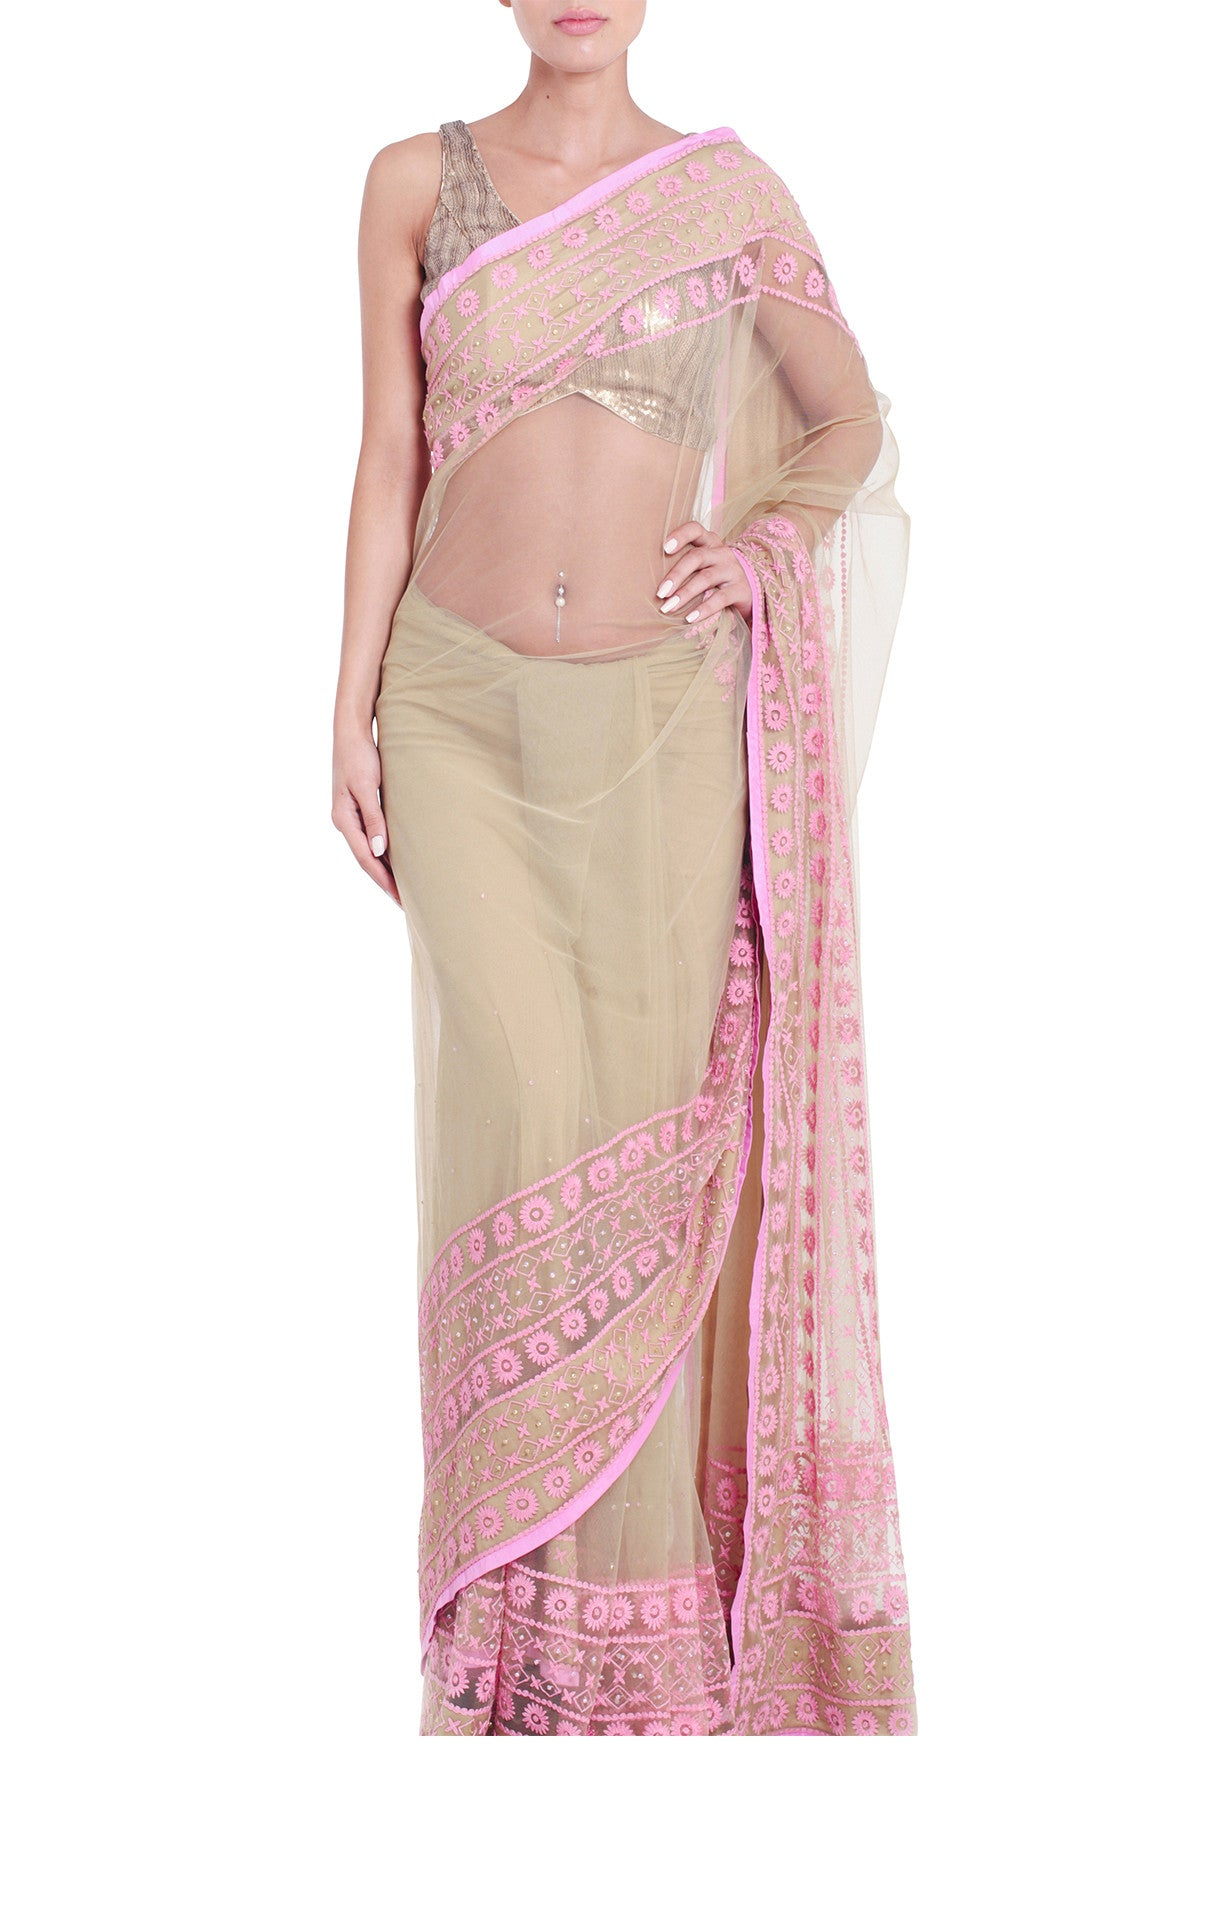 Shehla Khan Khaki Beige Tulle Saree Baby Pink Border Front